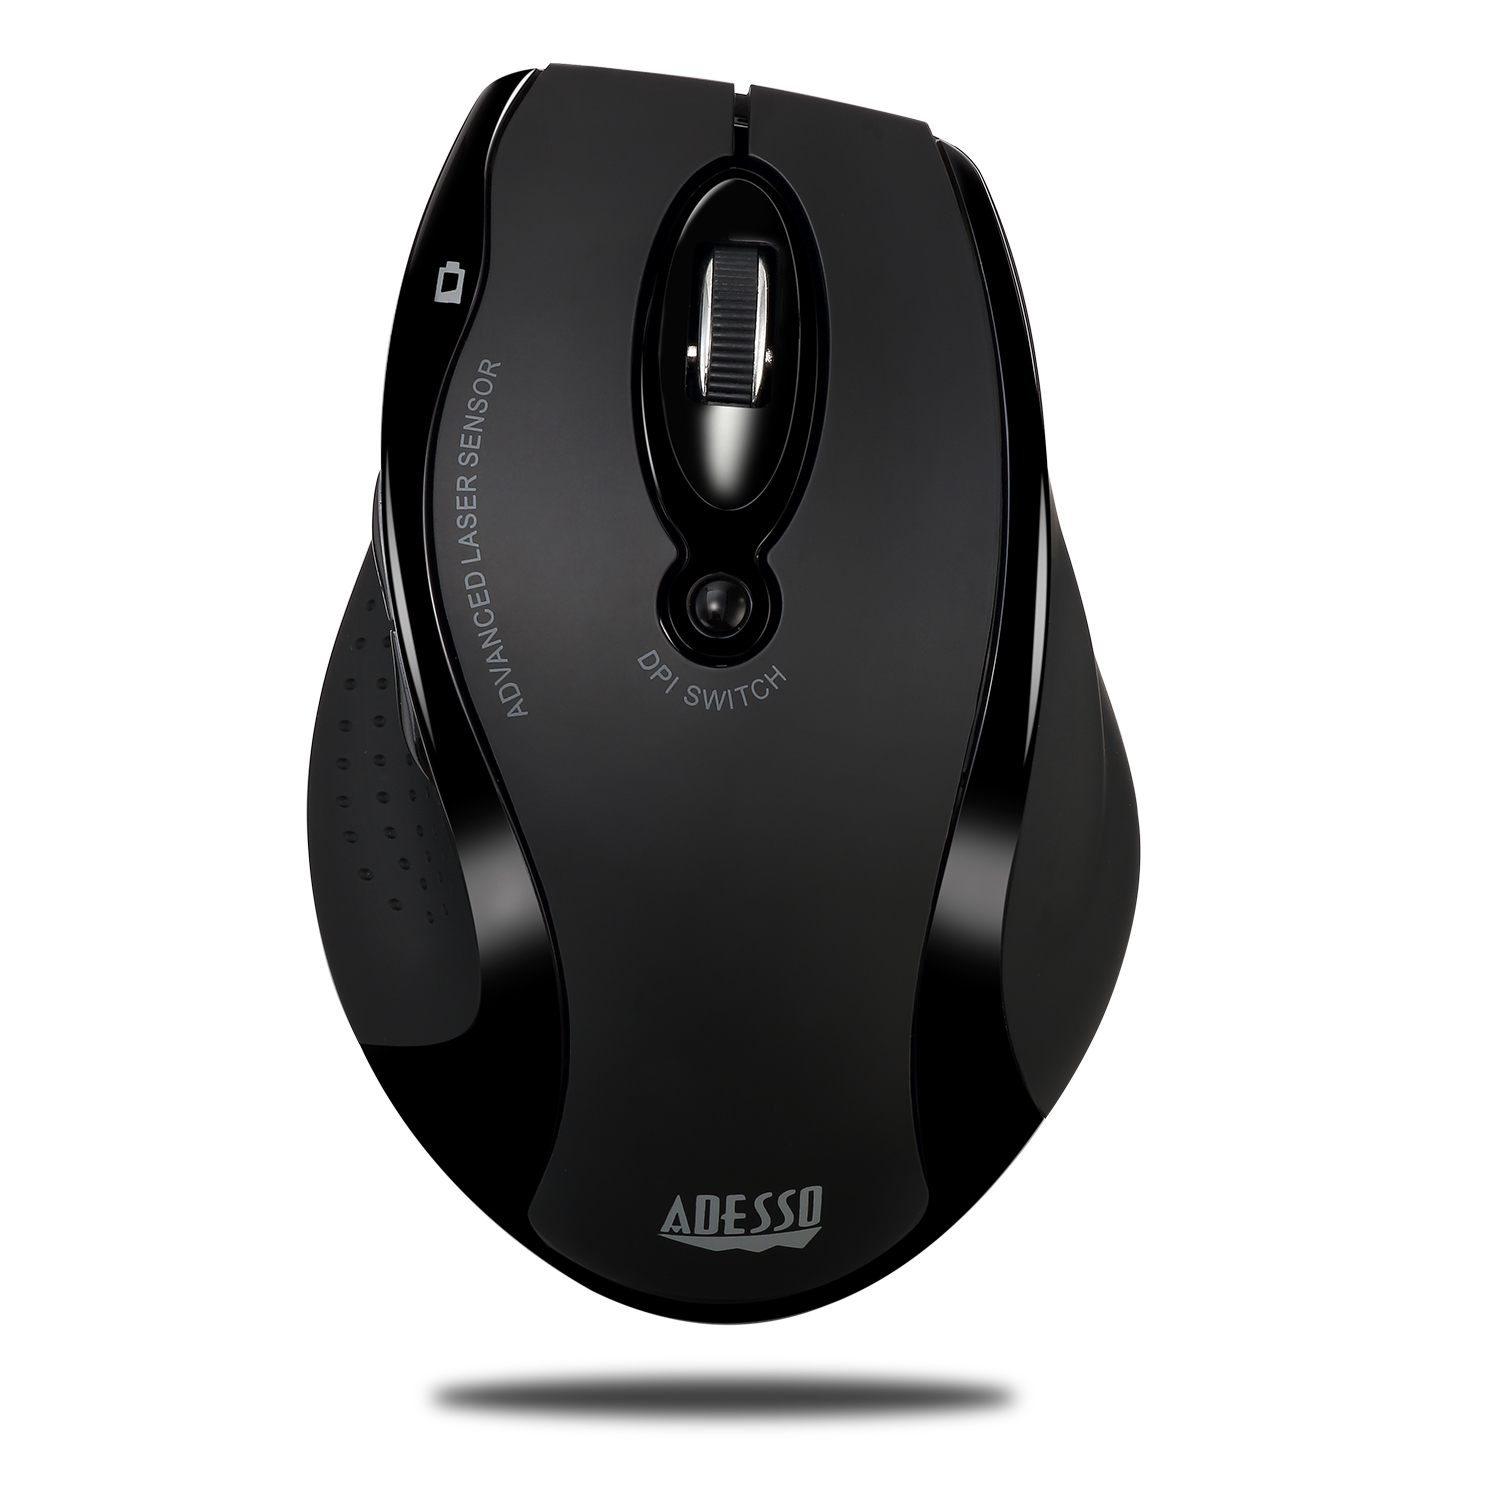 86c430dab49 iMouse G25 - Wireless Ergonomic Laser Mouse - Adesso Inc ::: Your ...